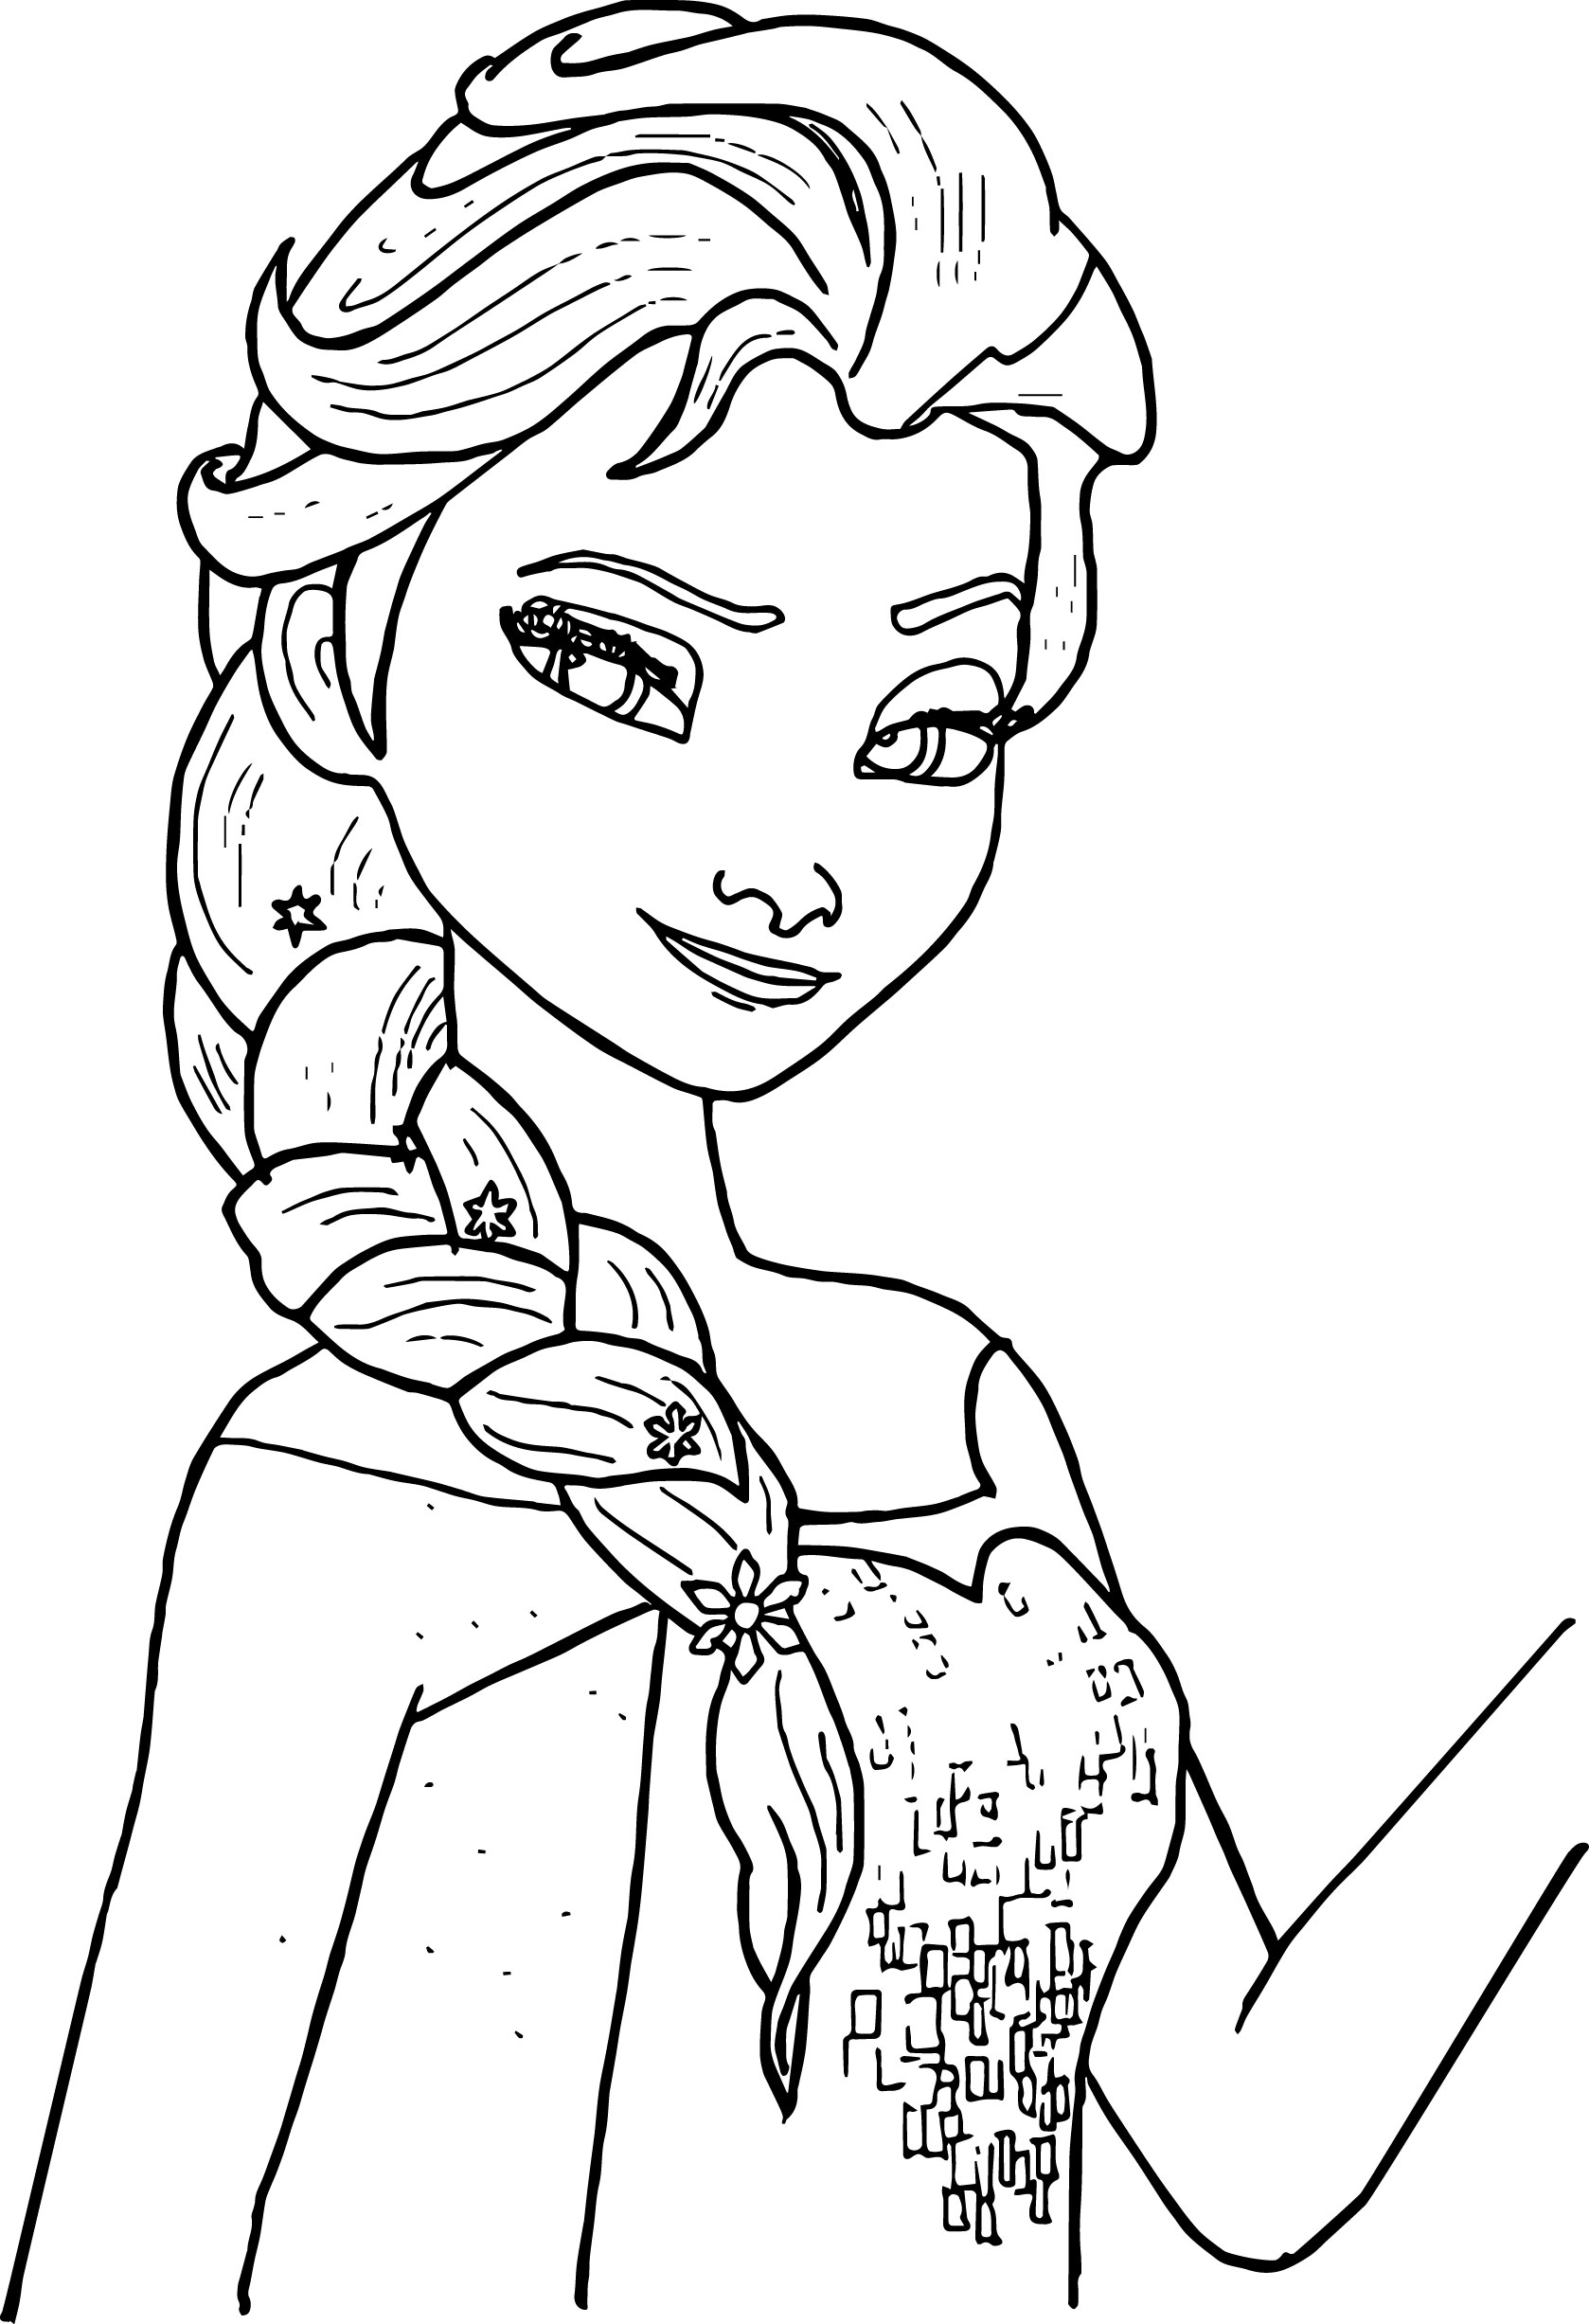 coloring picture to print free printable abstract coloring pages for adults to picture coloring print